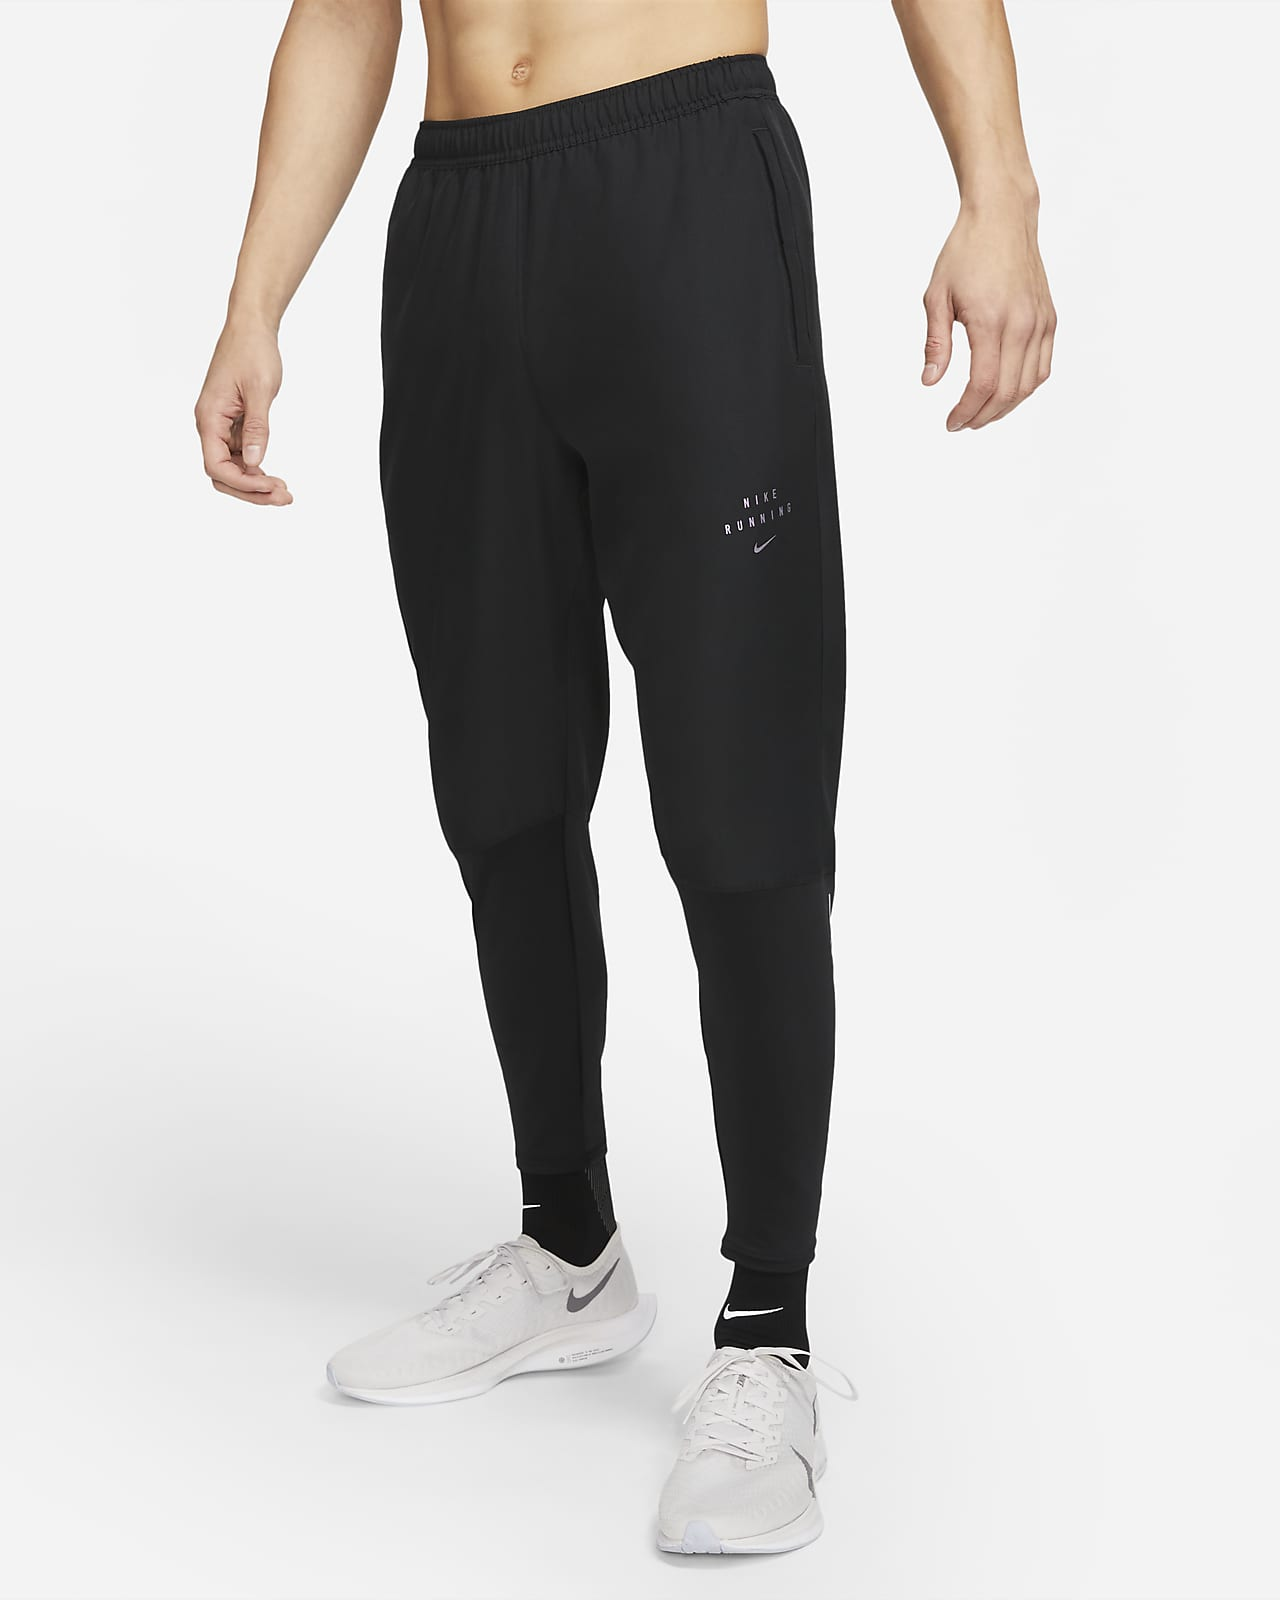 Nike Essential Run Division Men's Hybrid Running Trousers